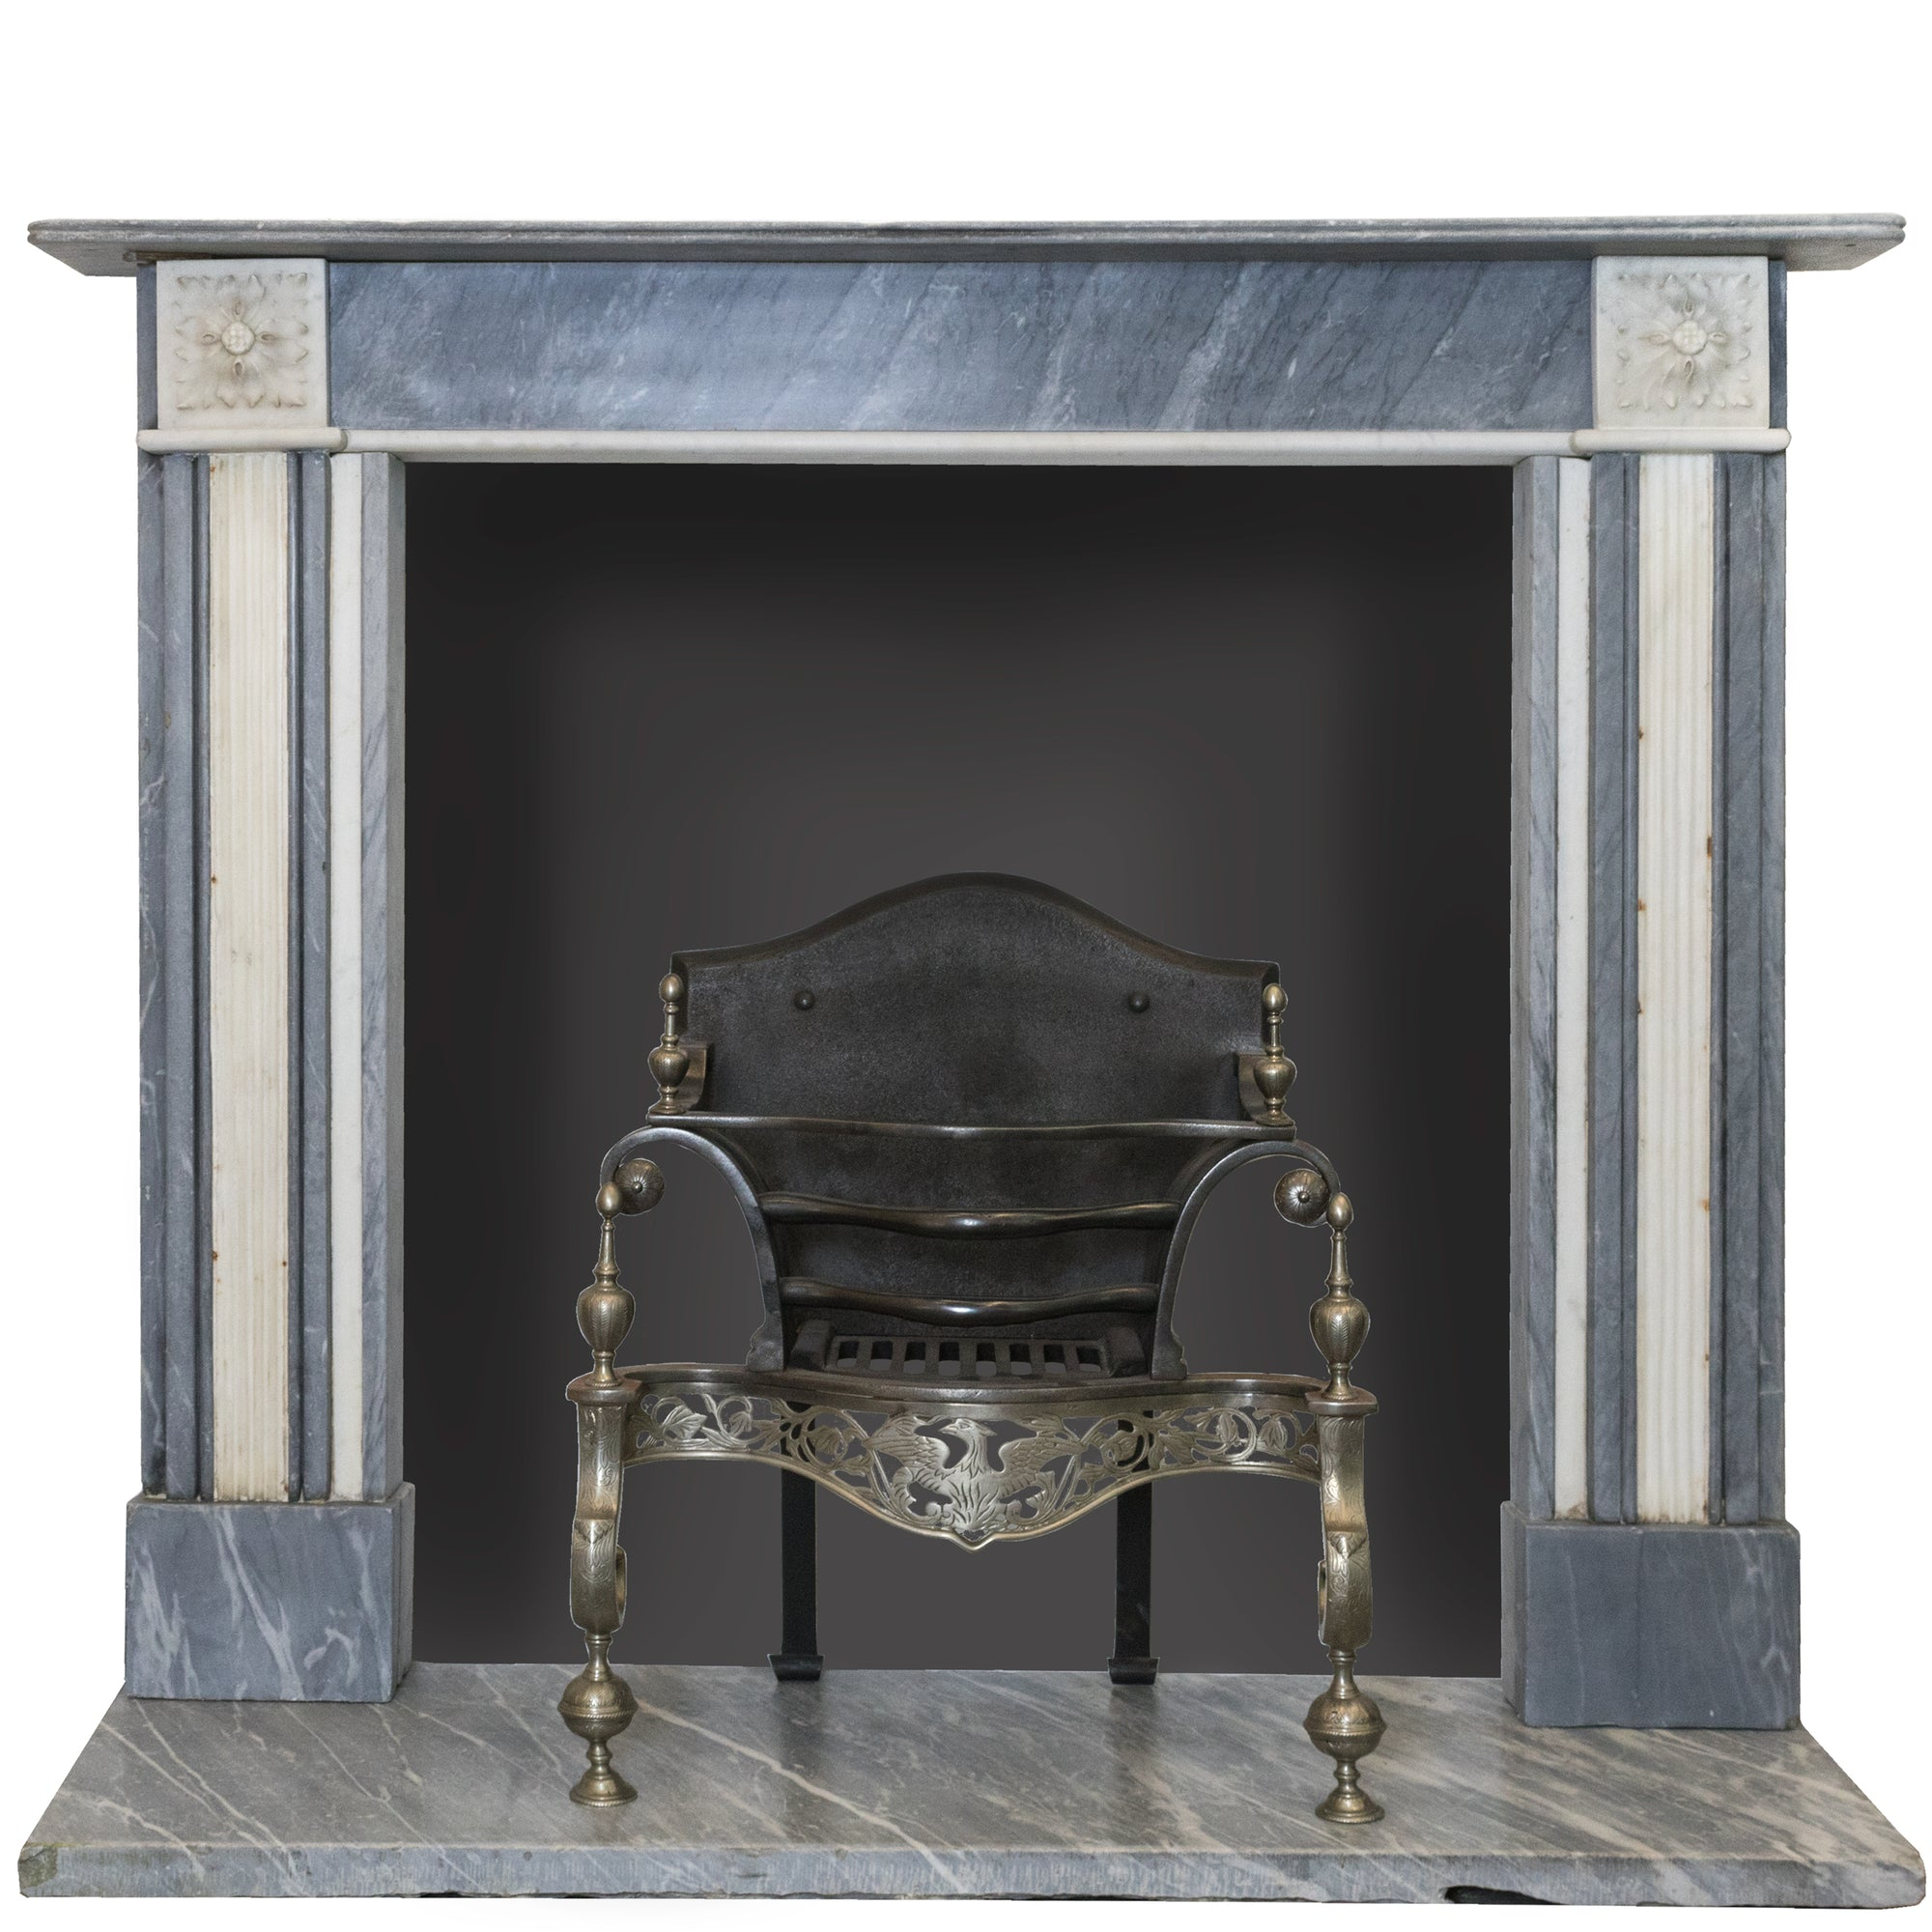 Antique Regency Dove Grey and Statuary Marble Chimneypiece